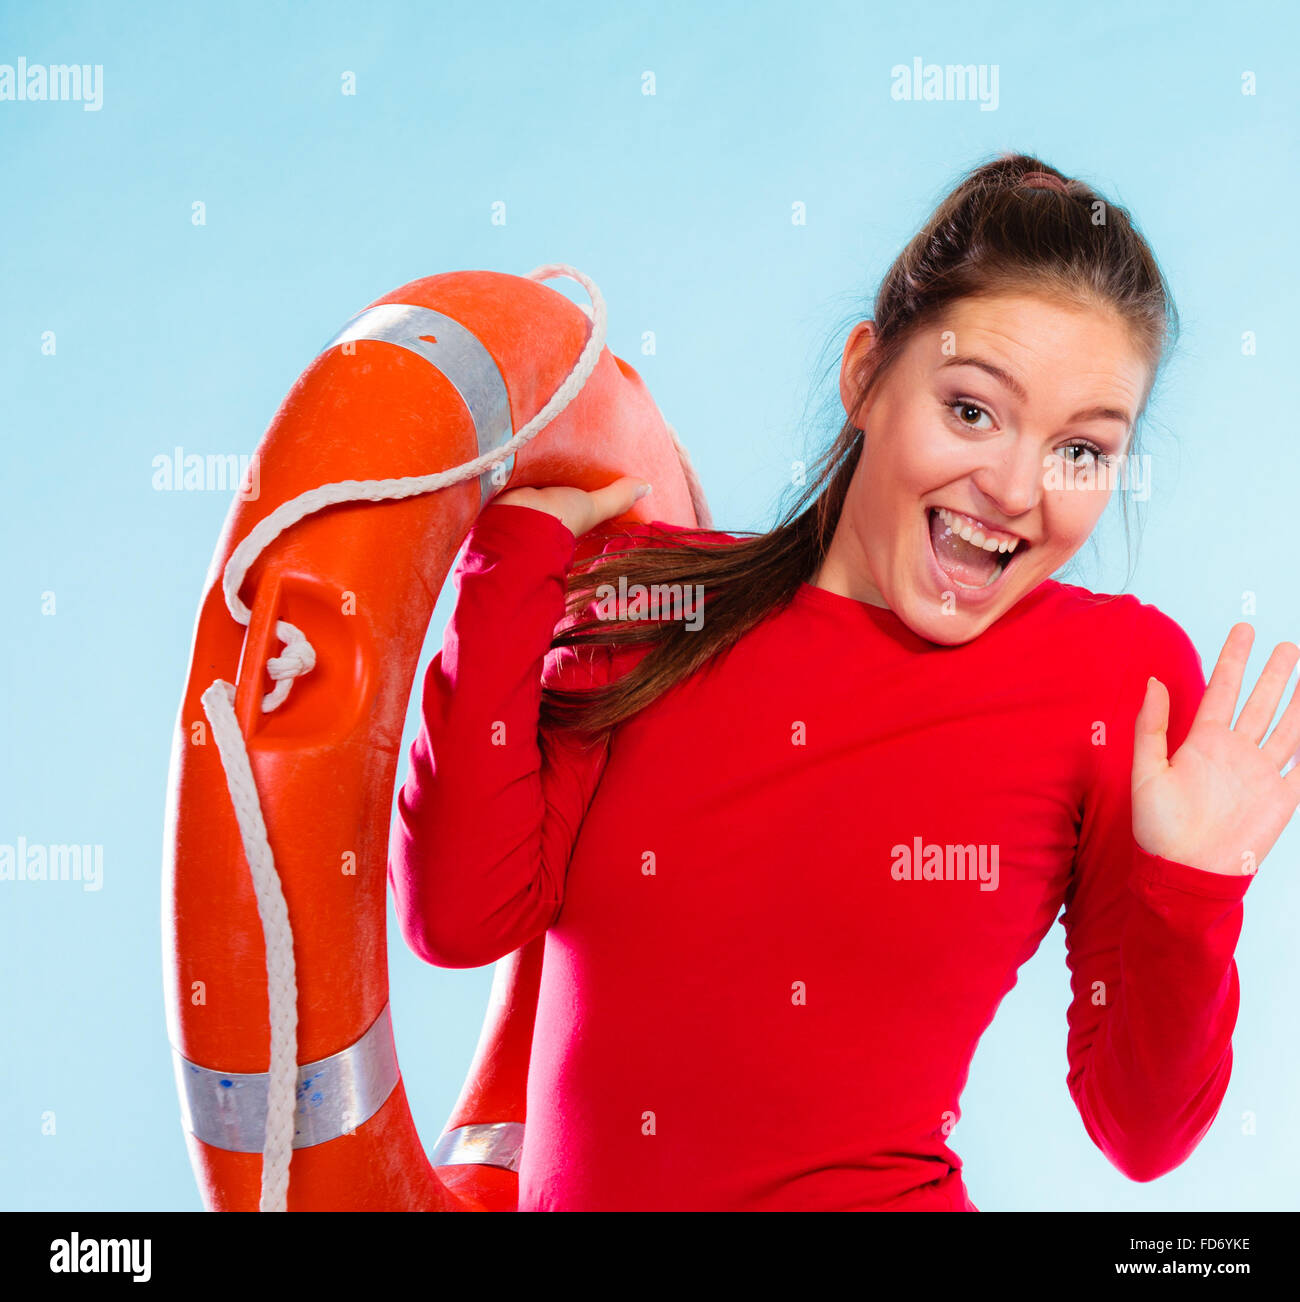 1840453ac71 Accident prevention and water rescue. Young woman female smiling lifeguard  on duty holding lifesaver equipment having fun.